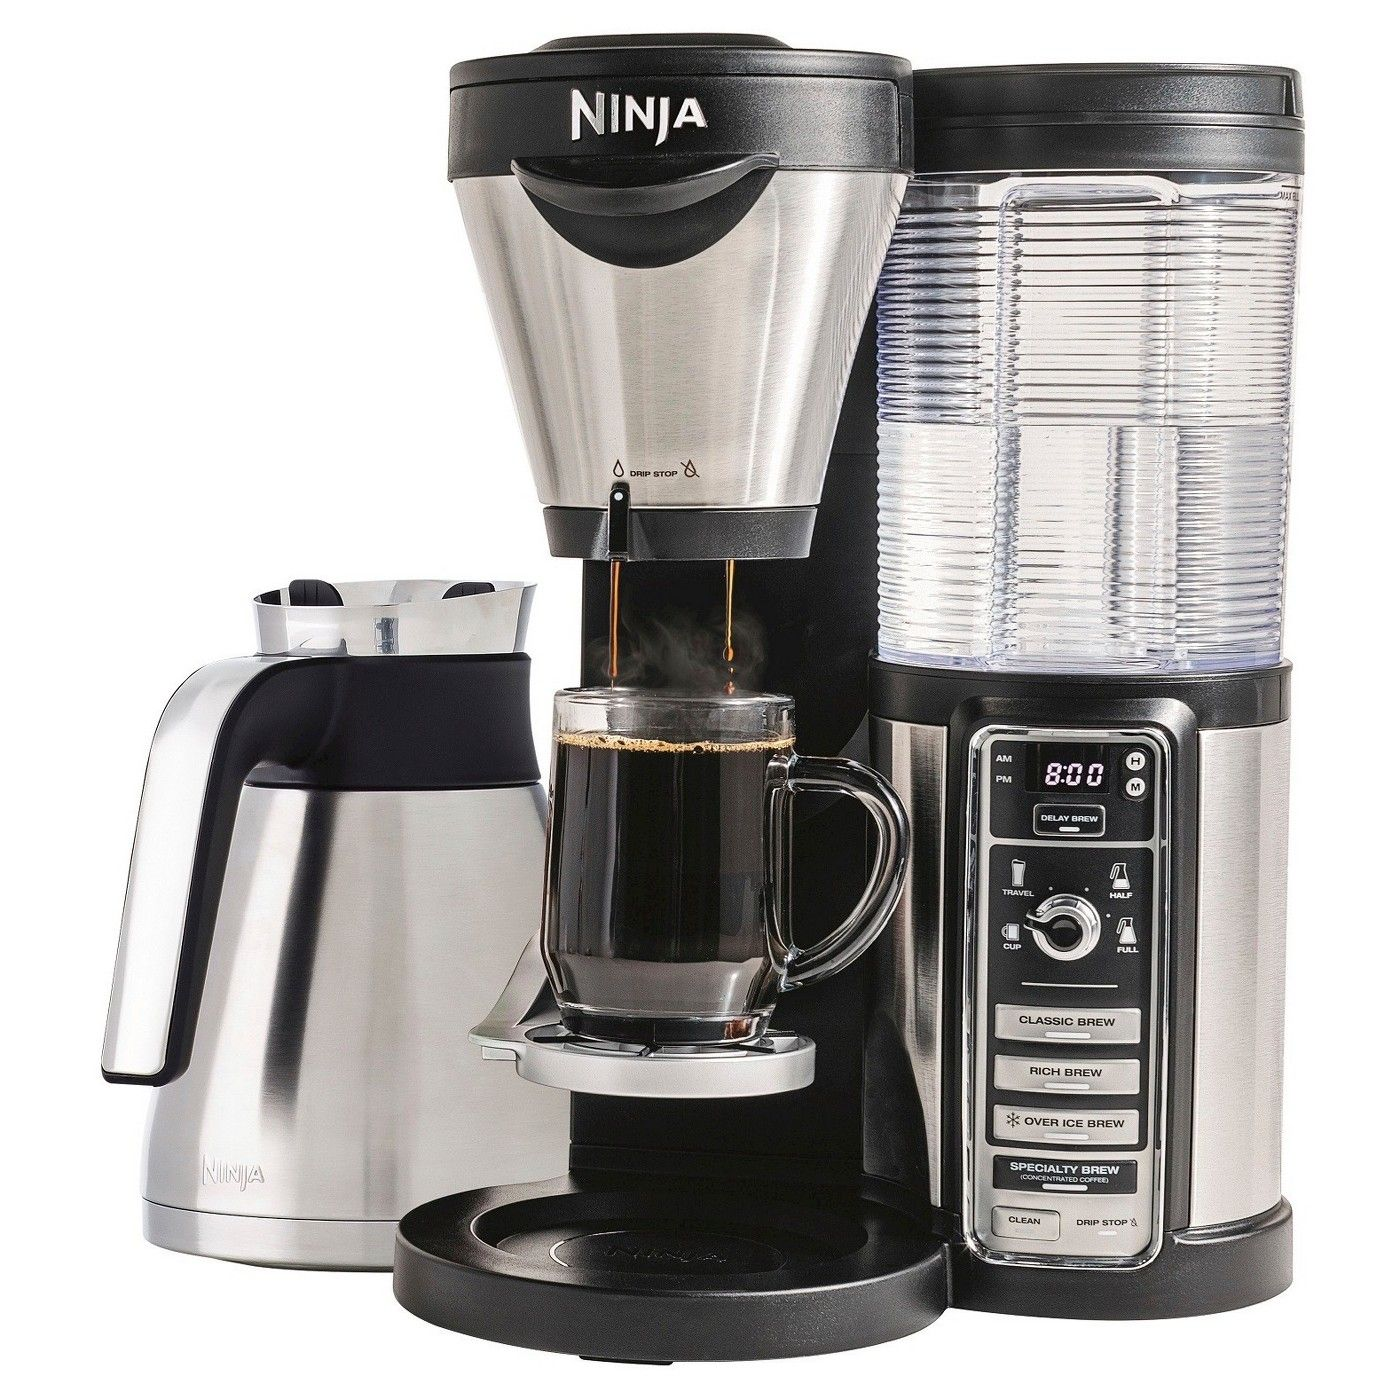 Ninja coffeebar coffeemaker with thermal carafe image of by